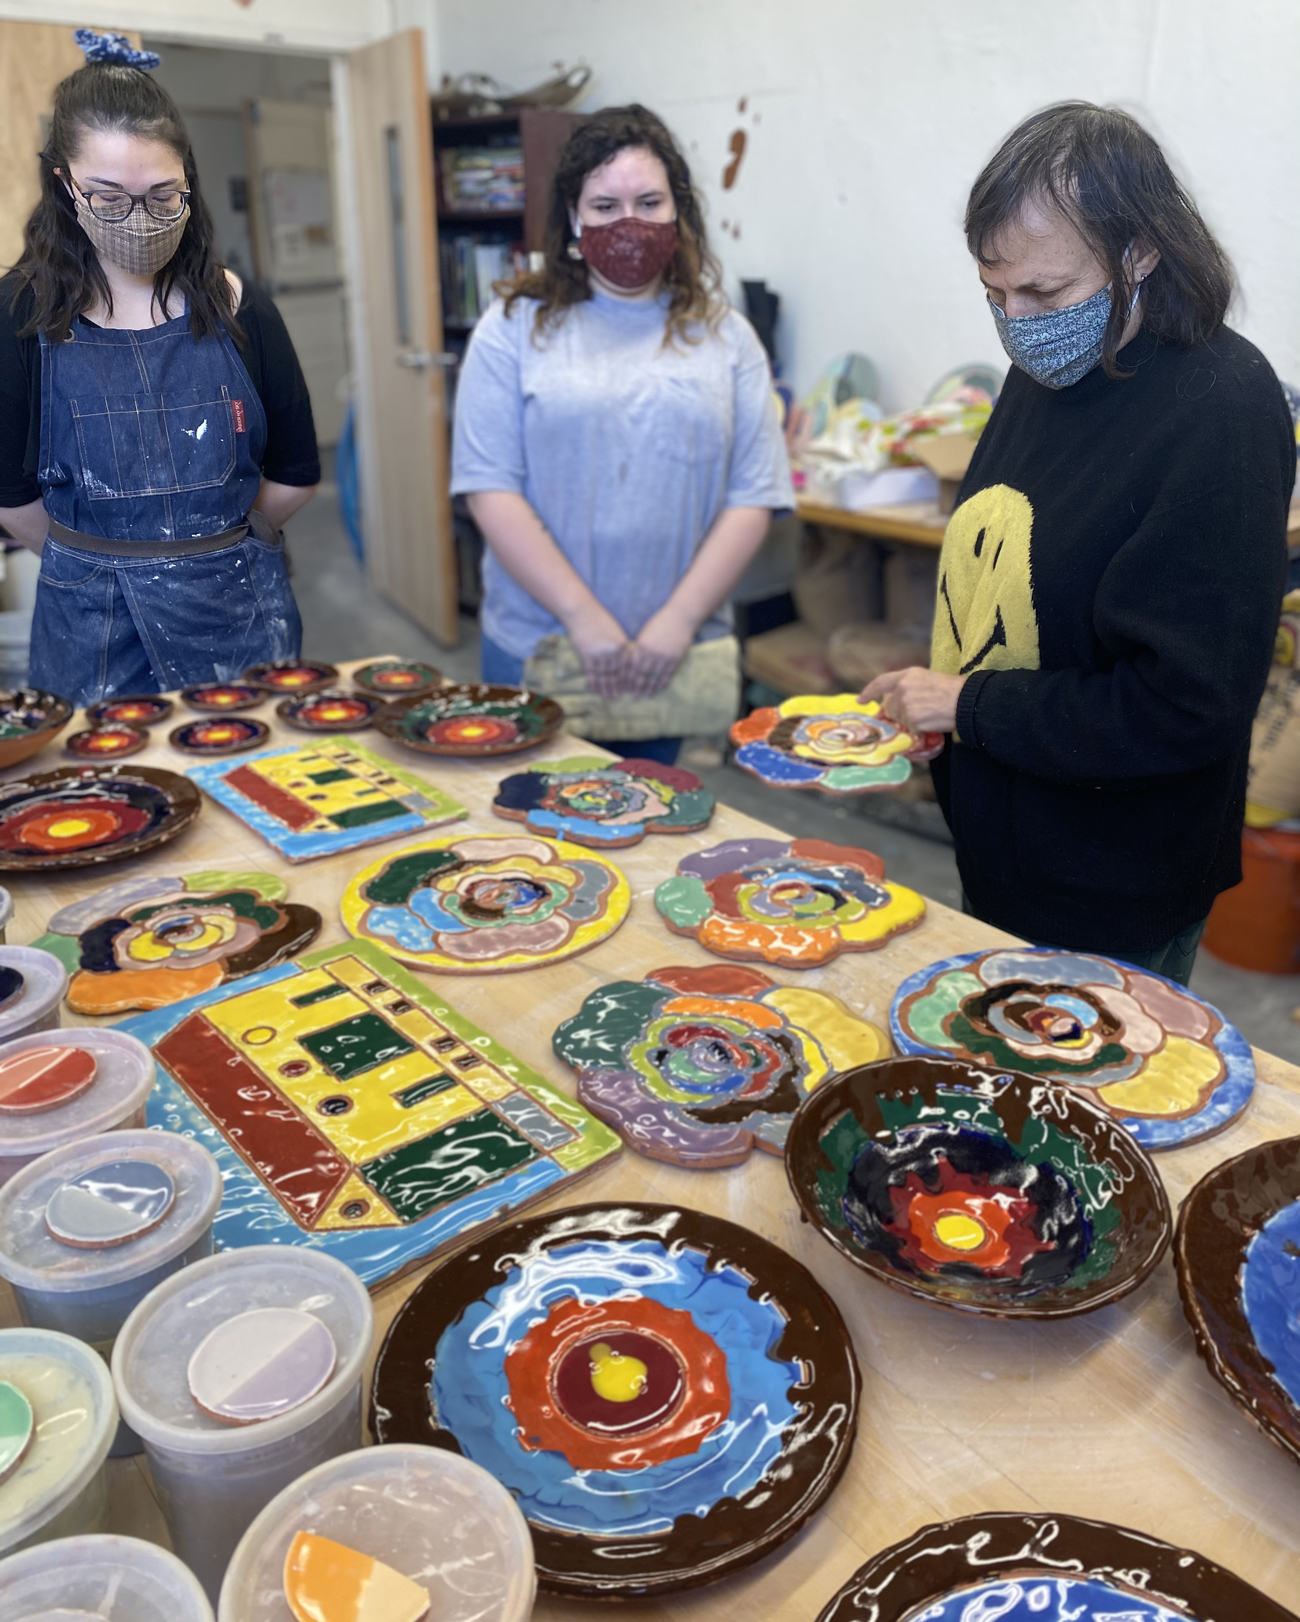 Polly Apfelbaum with Arcadia students during her residency